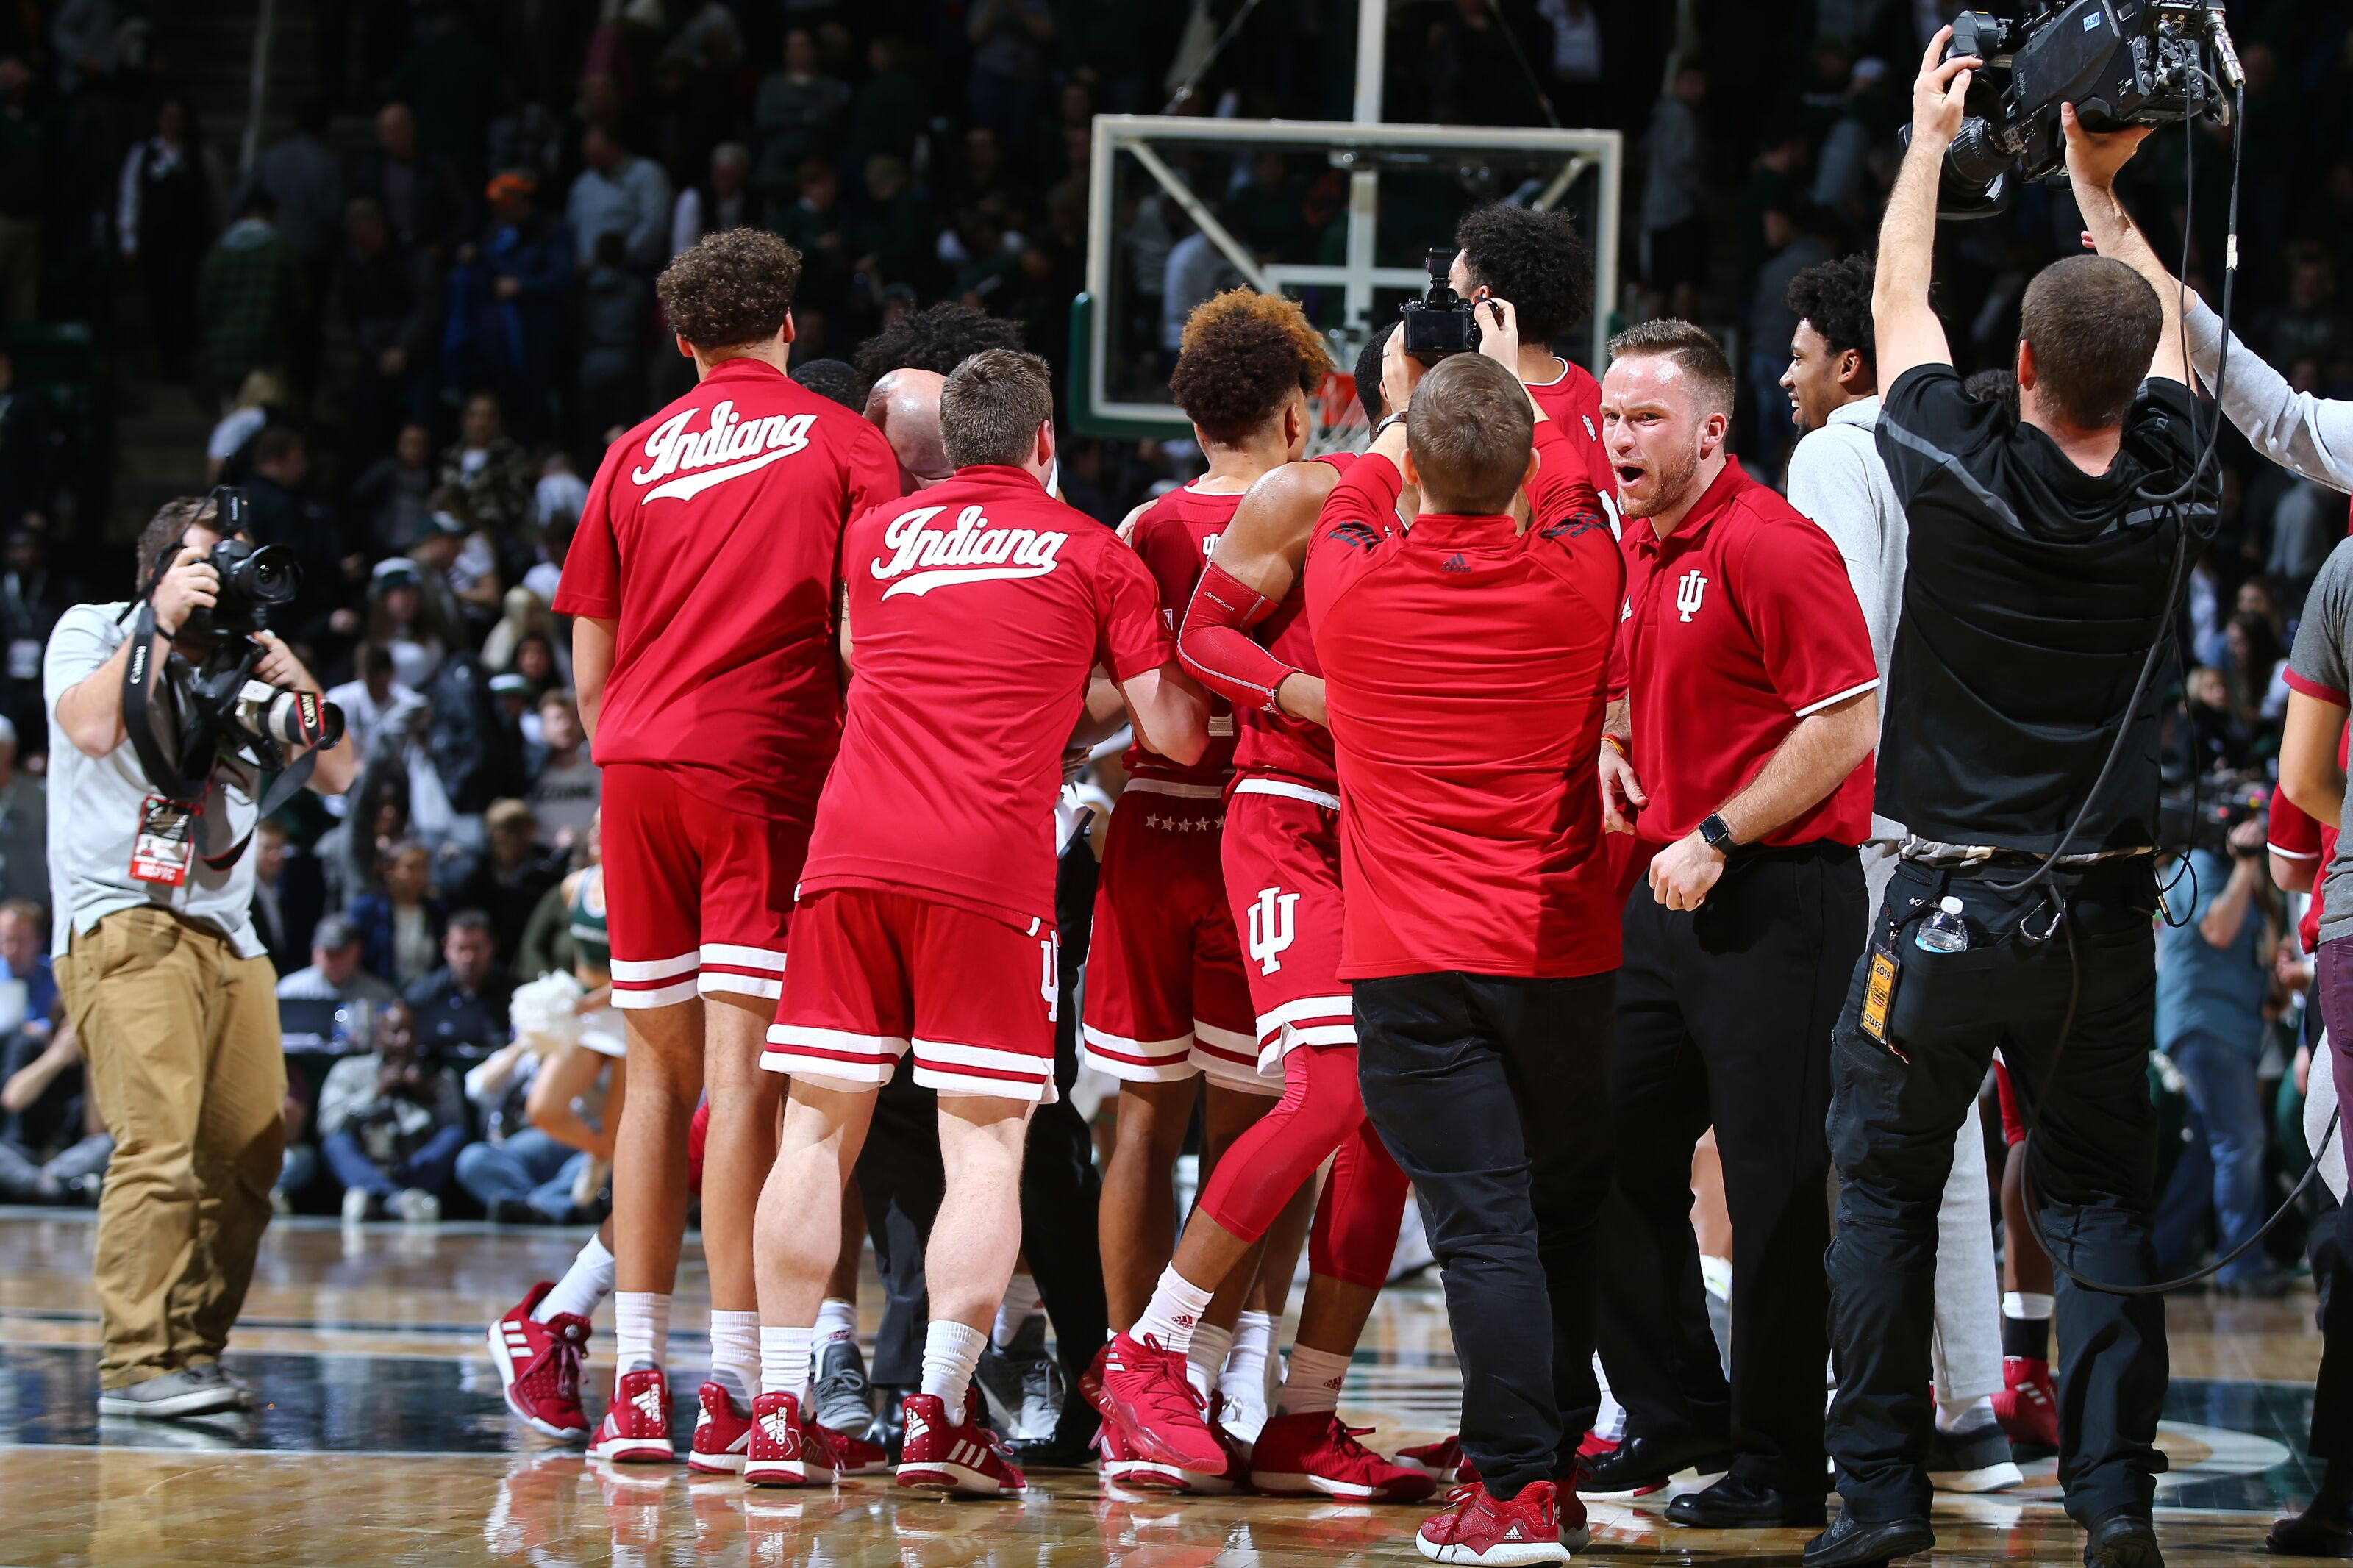 Bracketology Winners: Indiana, Creighton fighting back into contention